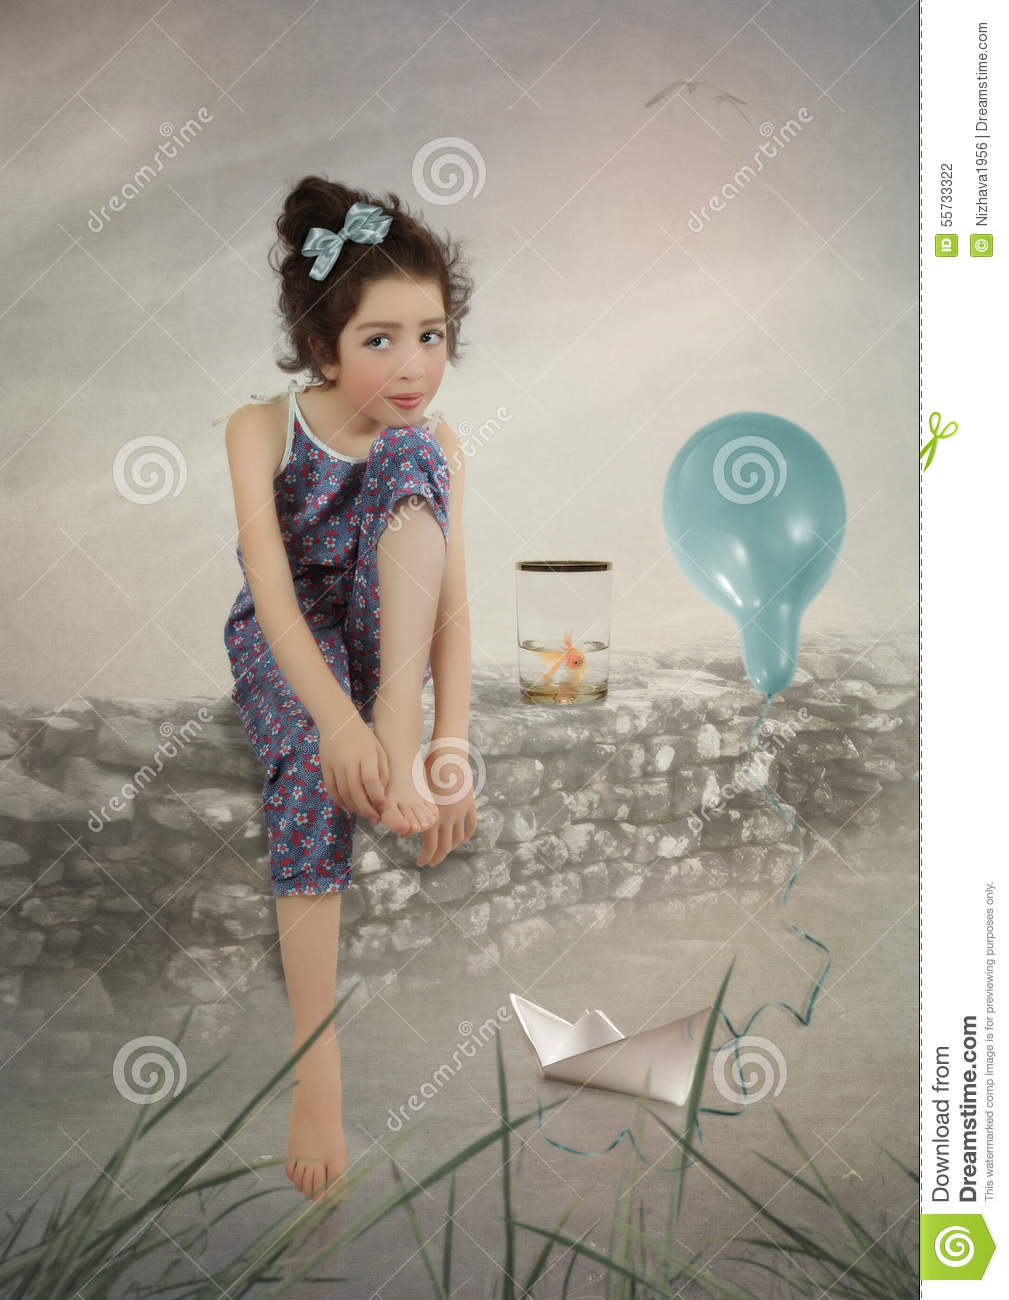 essay on childhood dreams Essay about childhood dreams posted on sunday, november 26, 2017 what is a visual analysis essay isaac: november 27, 2017 i like my men use good diction in your.